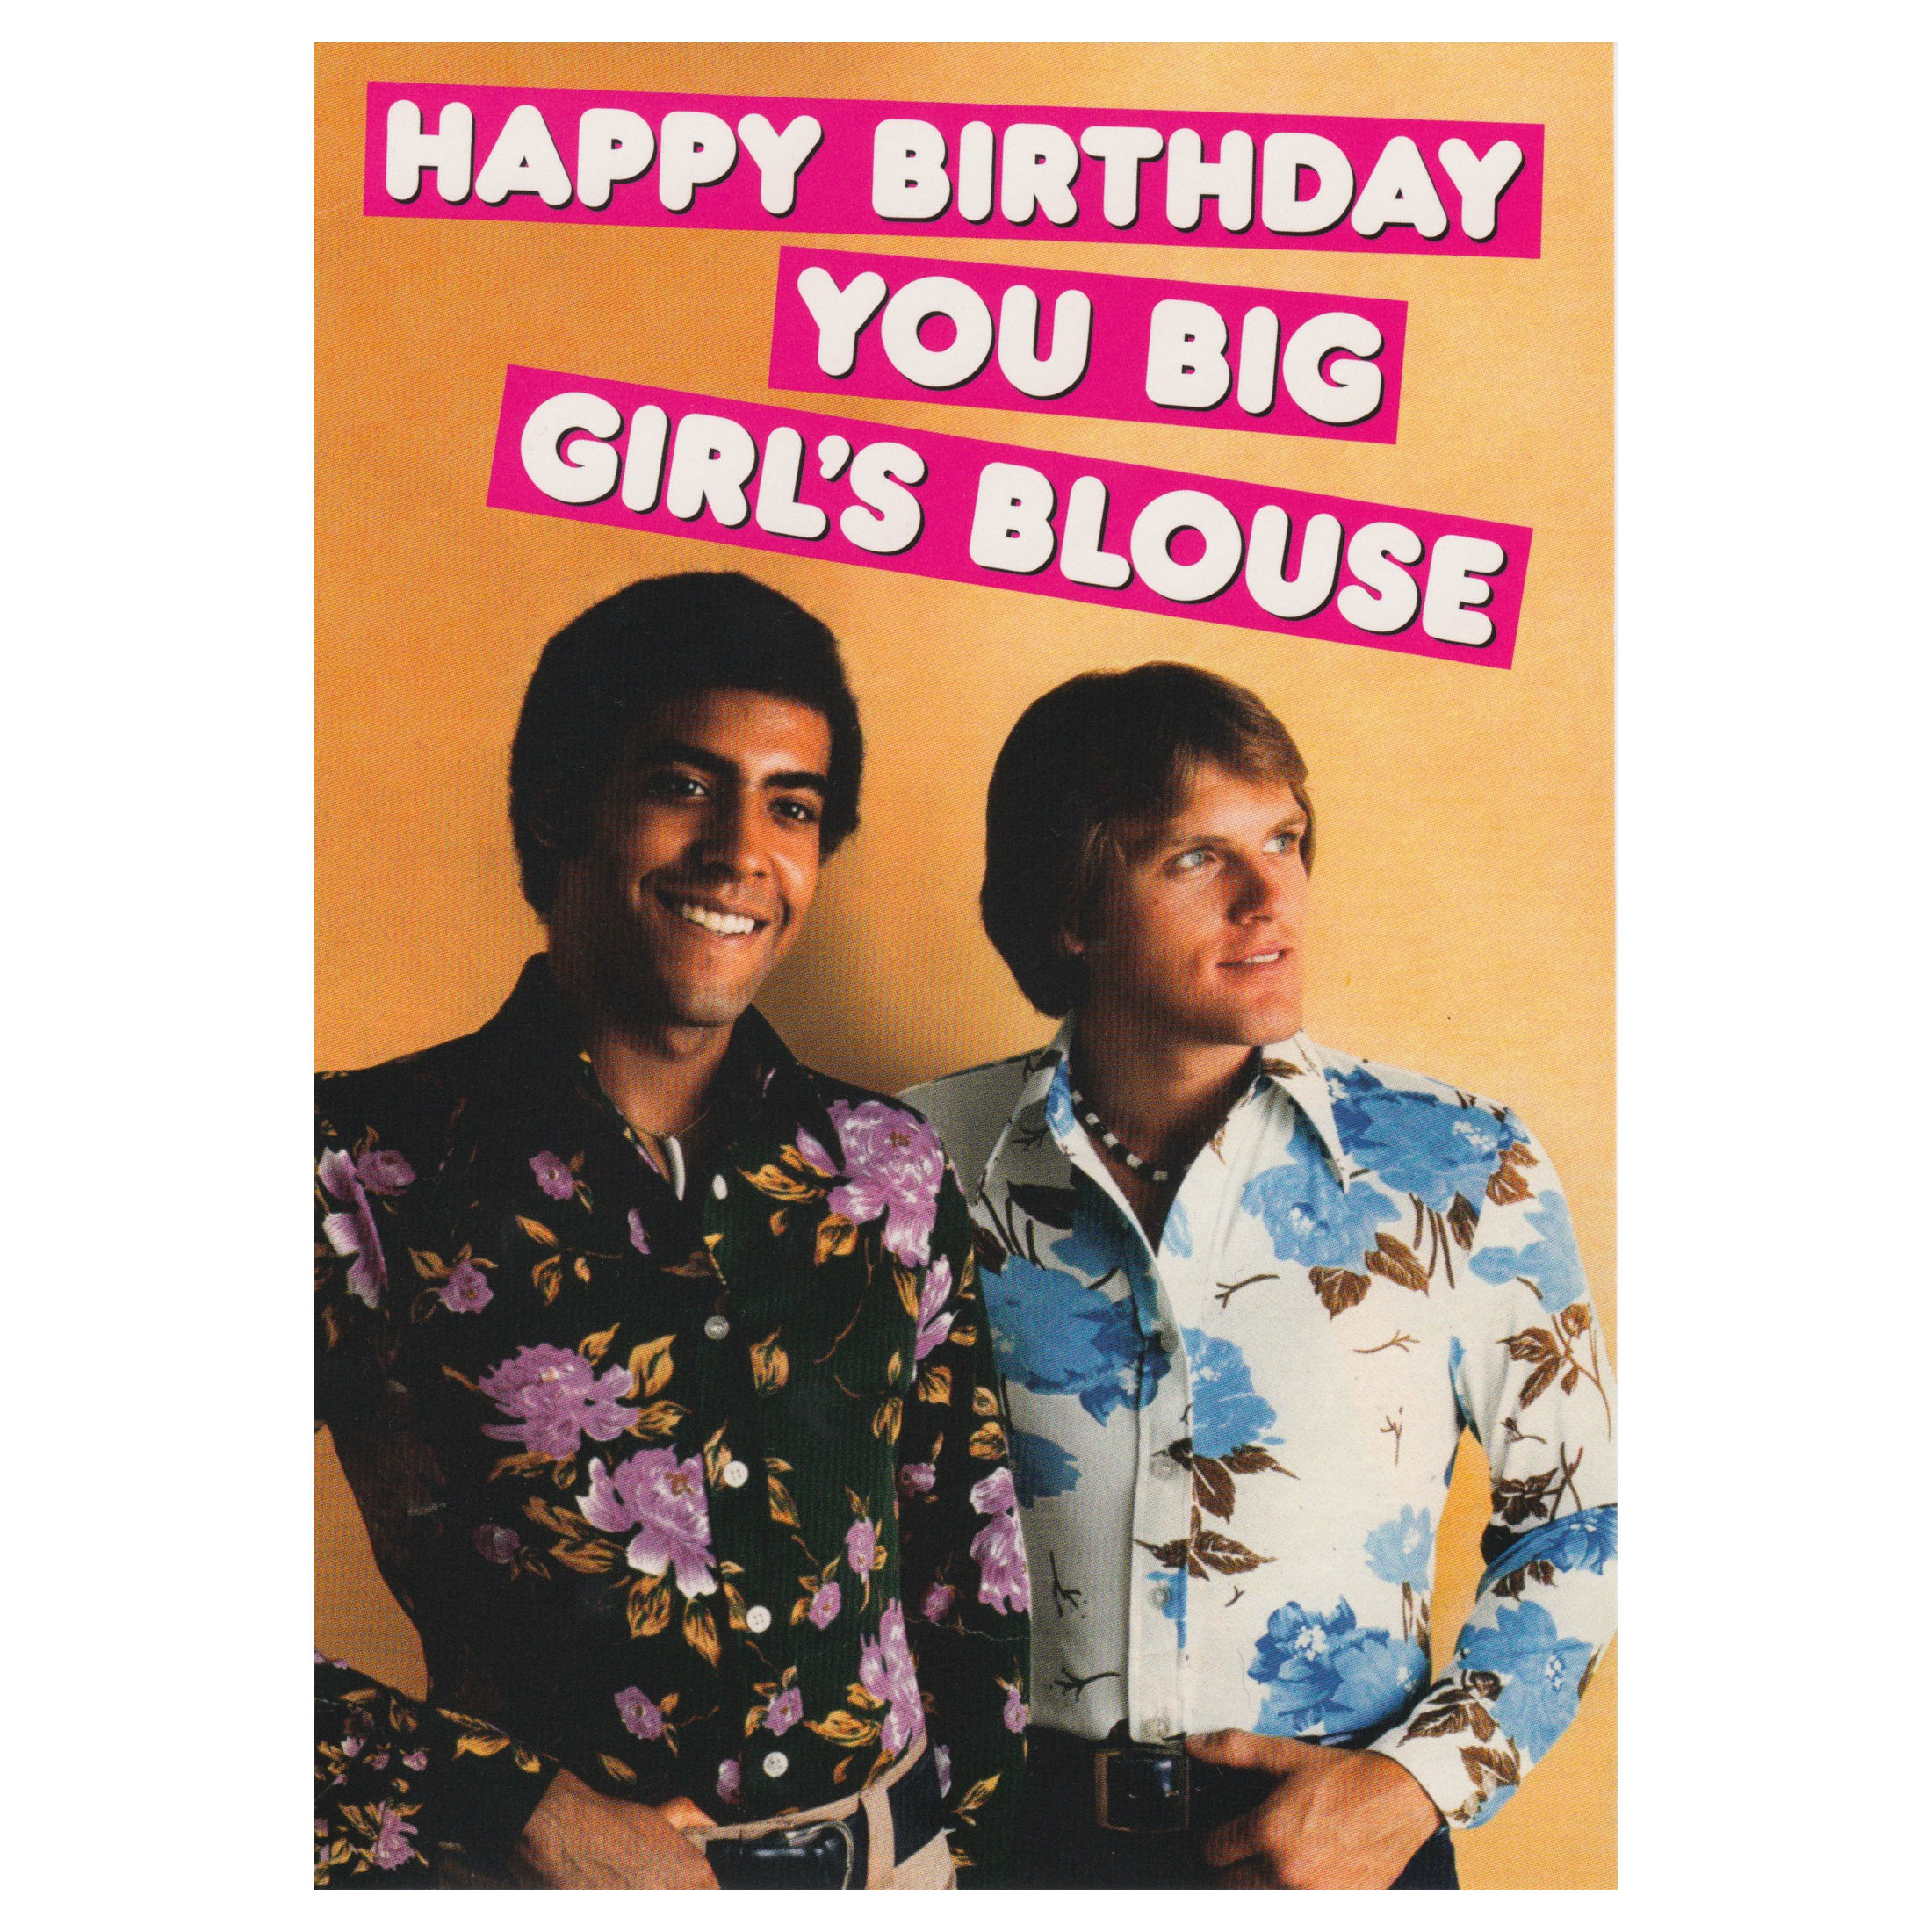 HAPPY BIRTHDAY YOU BIG GIRLS BLOUSE GREETING CARD RETRO HUMOUR